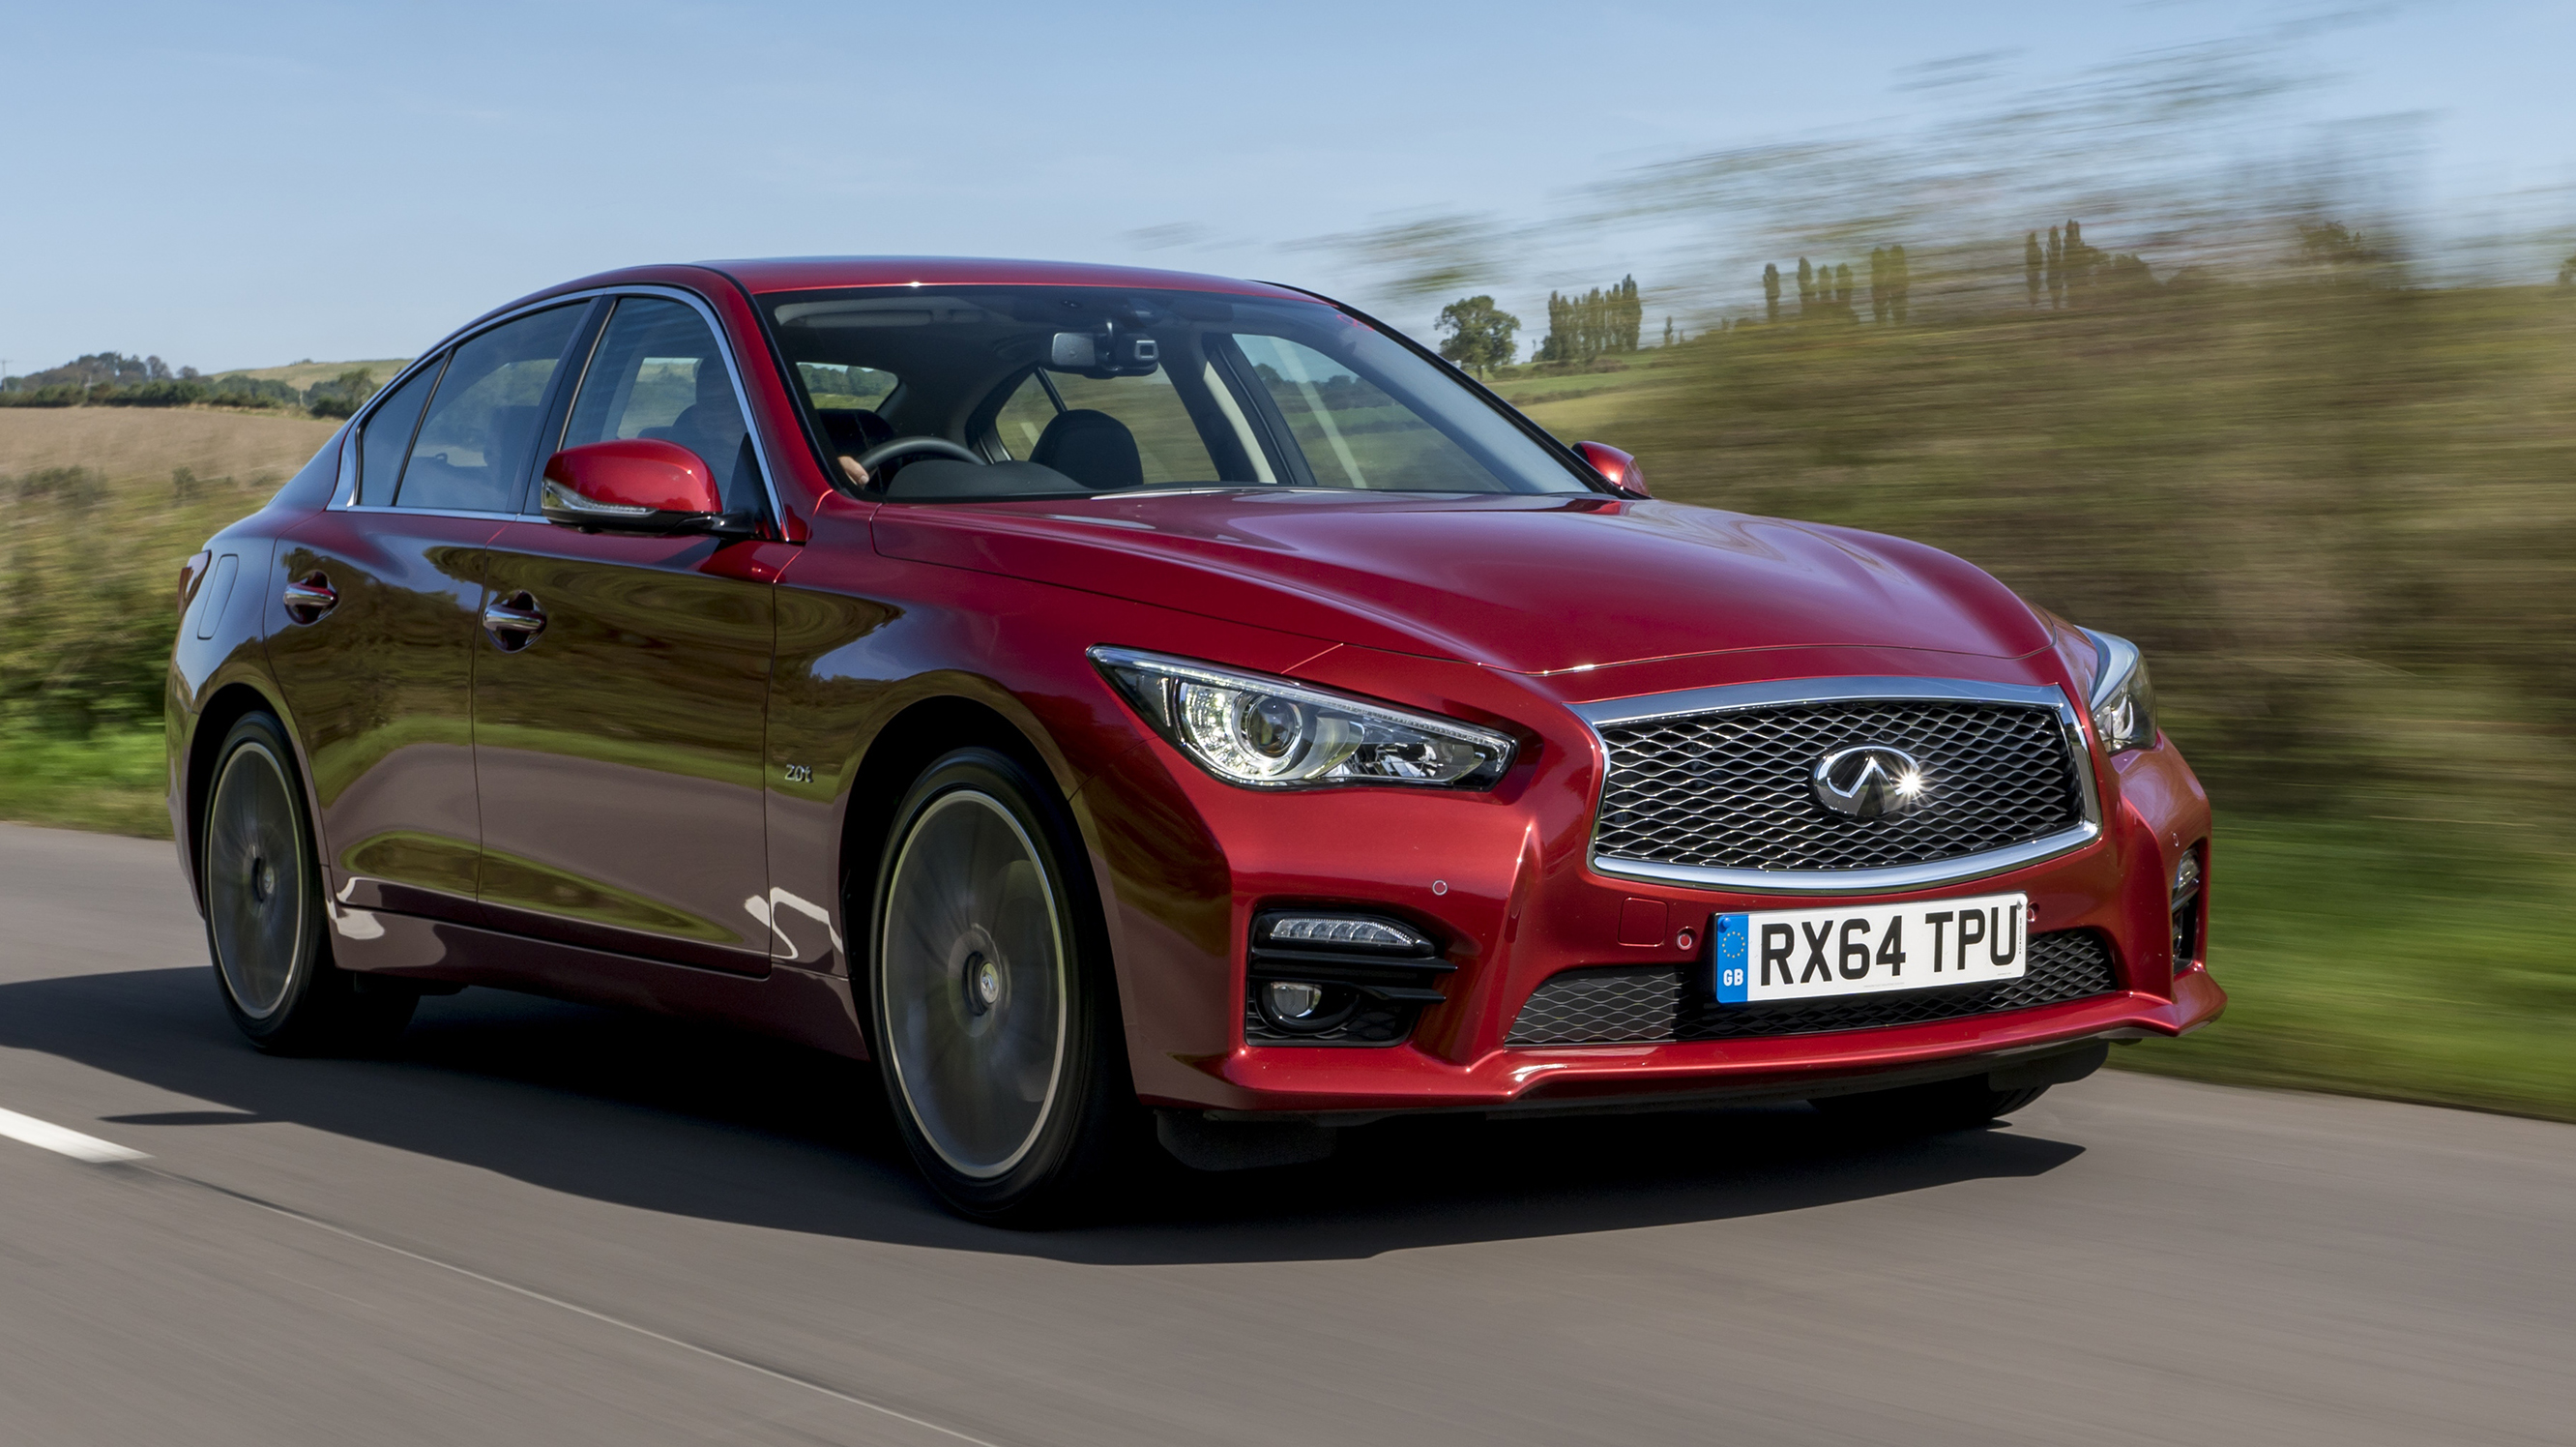 infiniti outperformance infinity front midsize sedan acura of grille design by tlx comparison compare luxury price vs